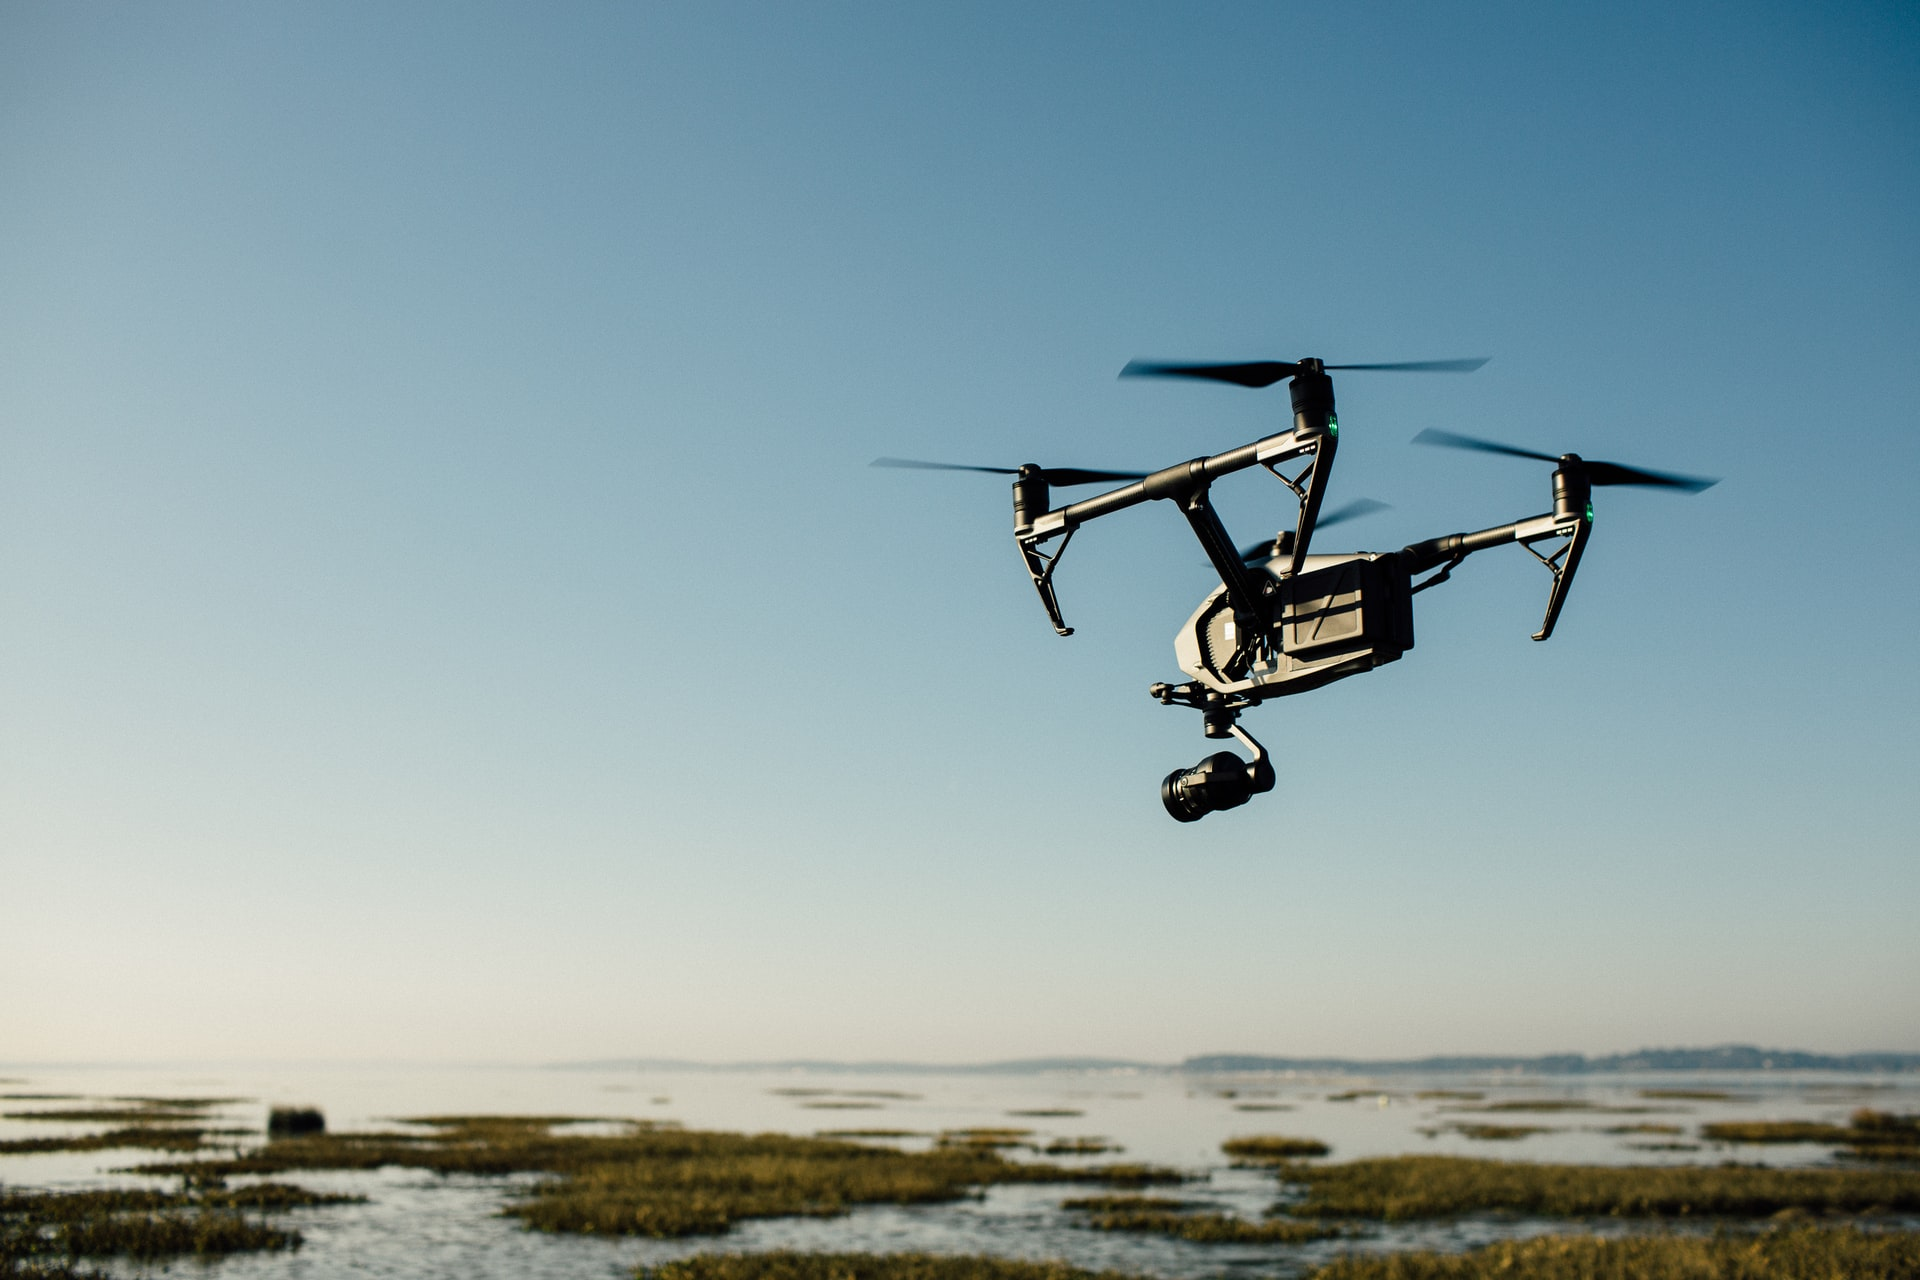 Drone Industry Sees Demand Surge for Delivery and Industrial Services